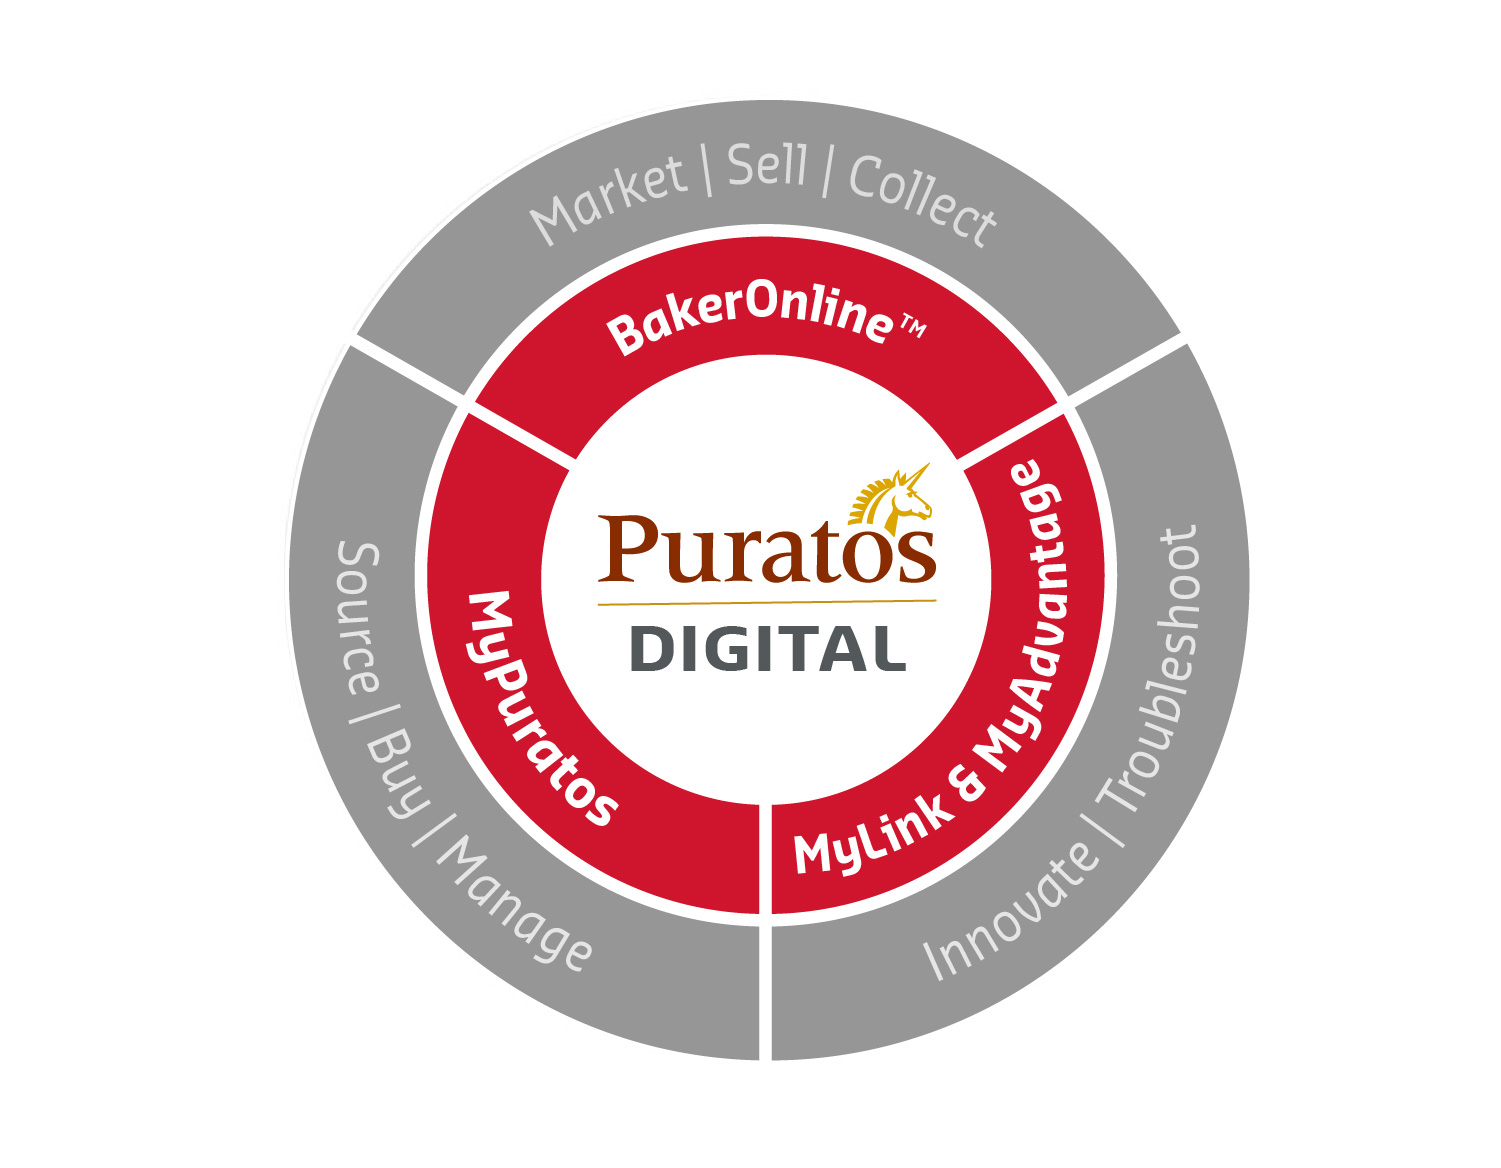 Puratos Digital